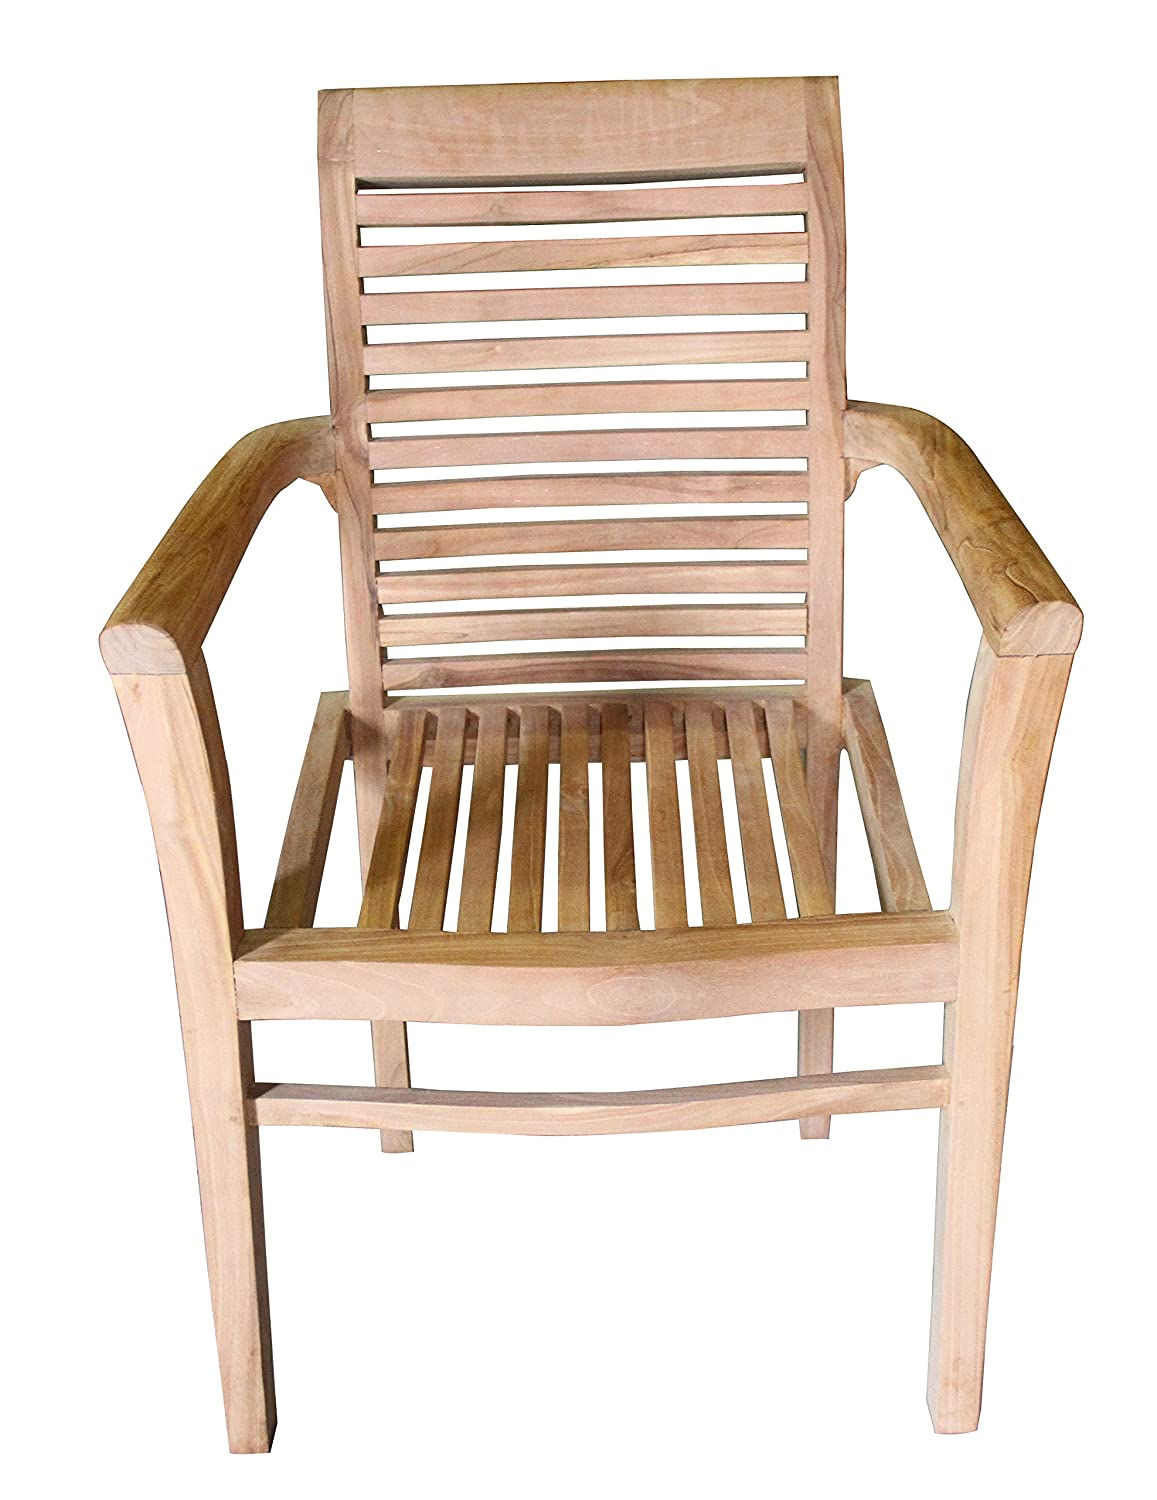 Exceptionnel Amazon.com : Ala Teak Wood Indoor Outdoor Patio Garden Yard Stackable Arm  Chair Set Seat Teak (2 Chairs) : Garden U0026 Outdoor